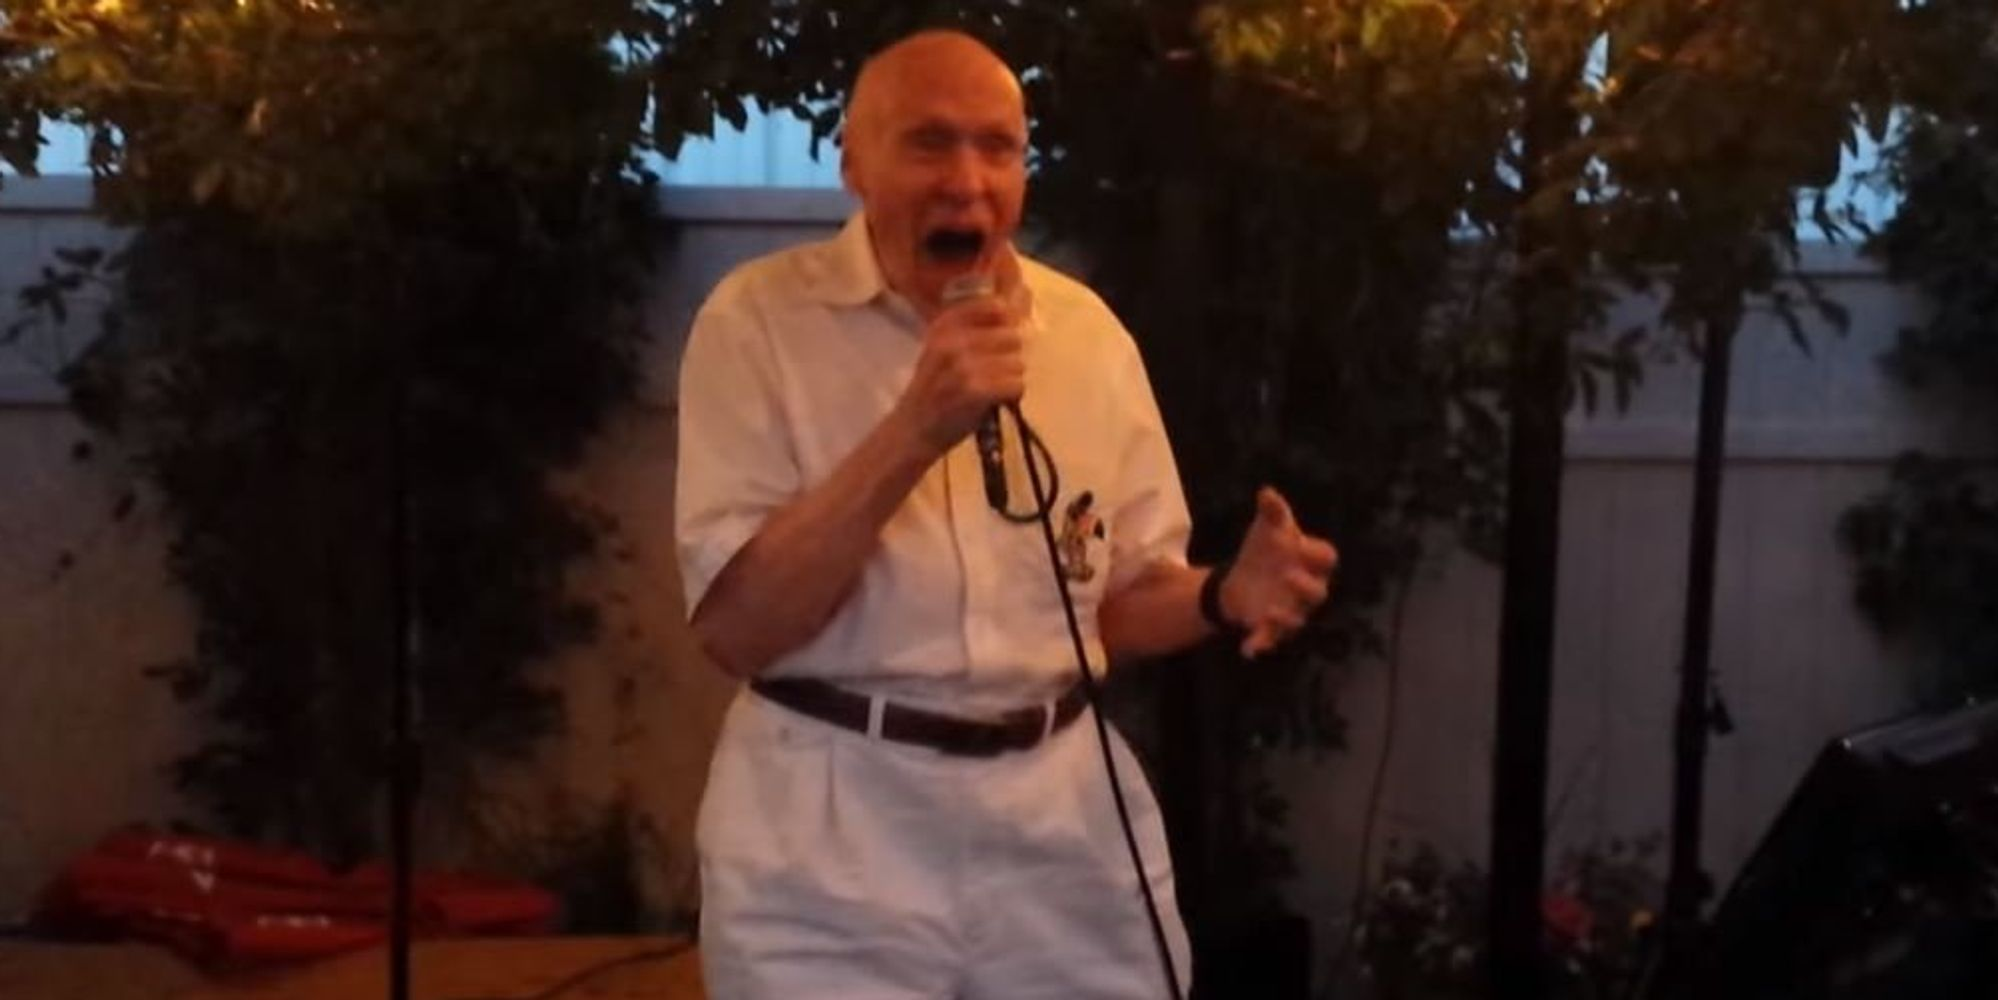 80 year old man sings drowning pool 39 bodies 39 karaoke for 1 let the bodies hit the floor